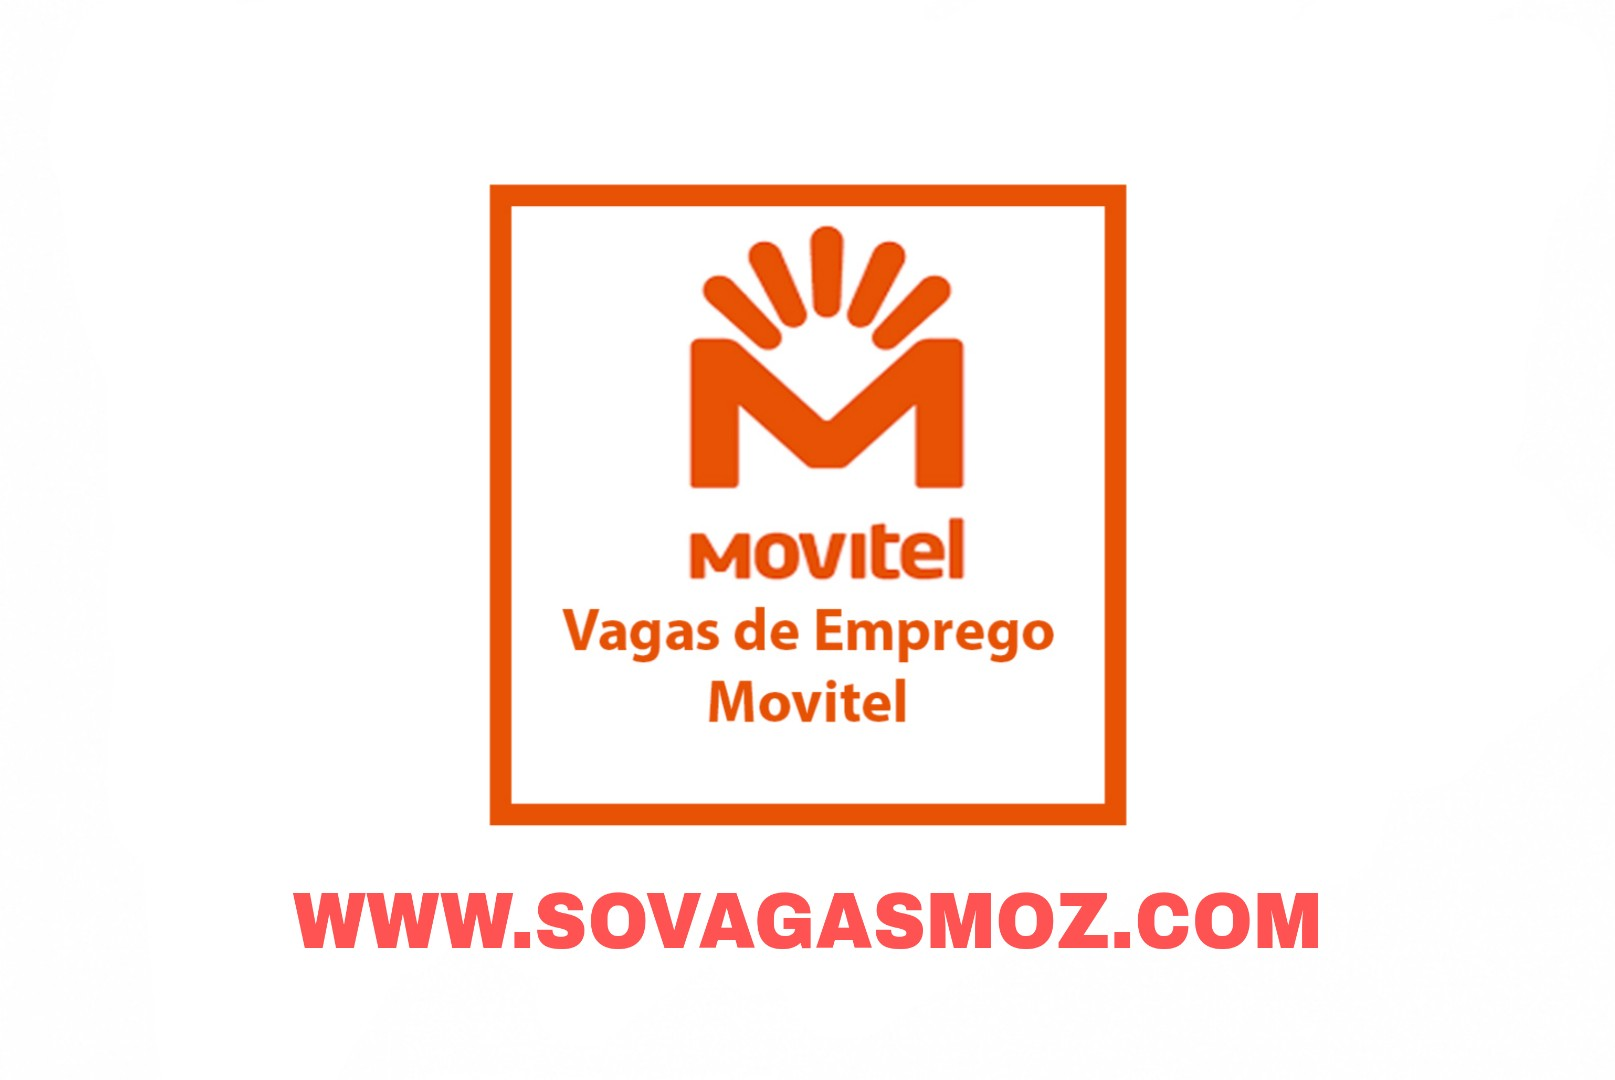 Sovagasmoz - Movitel